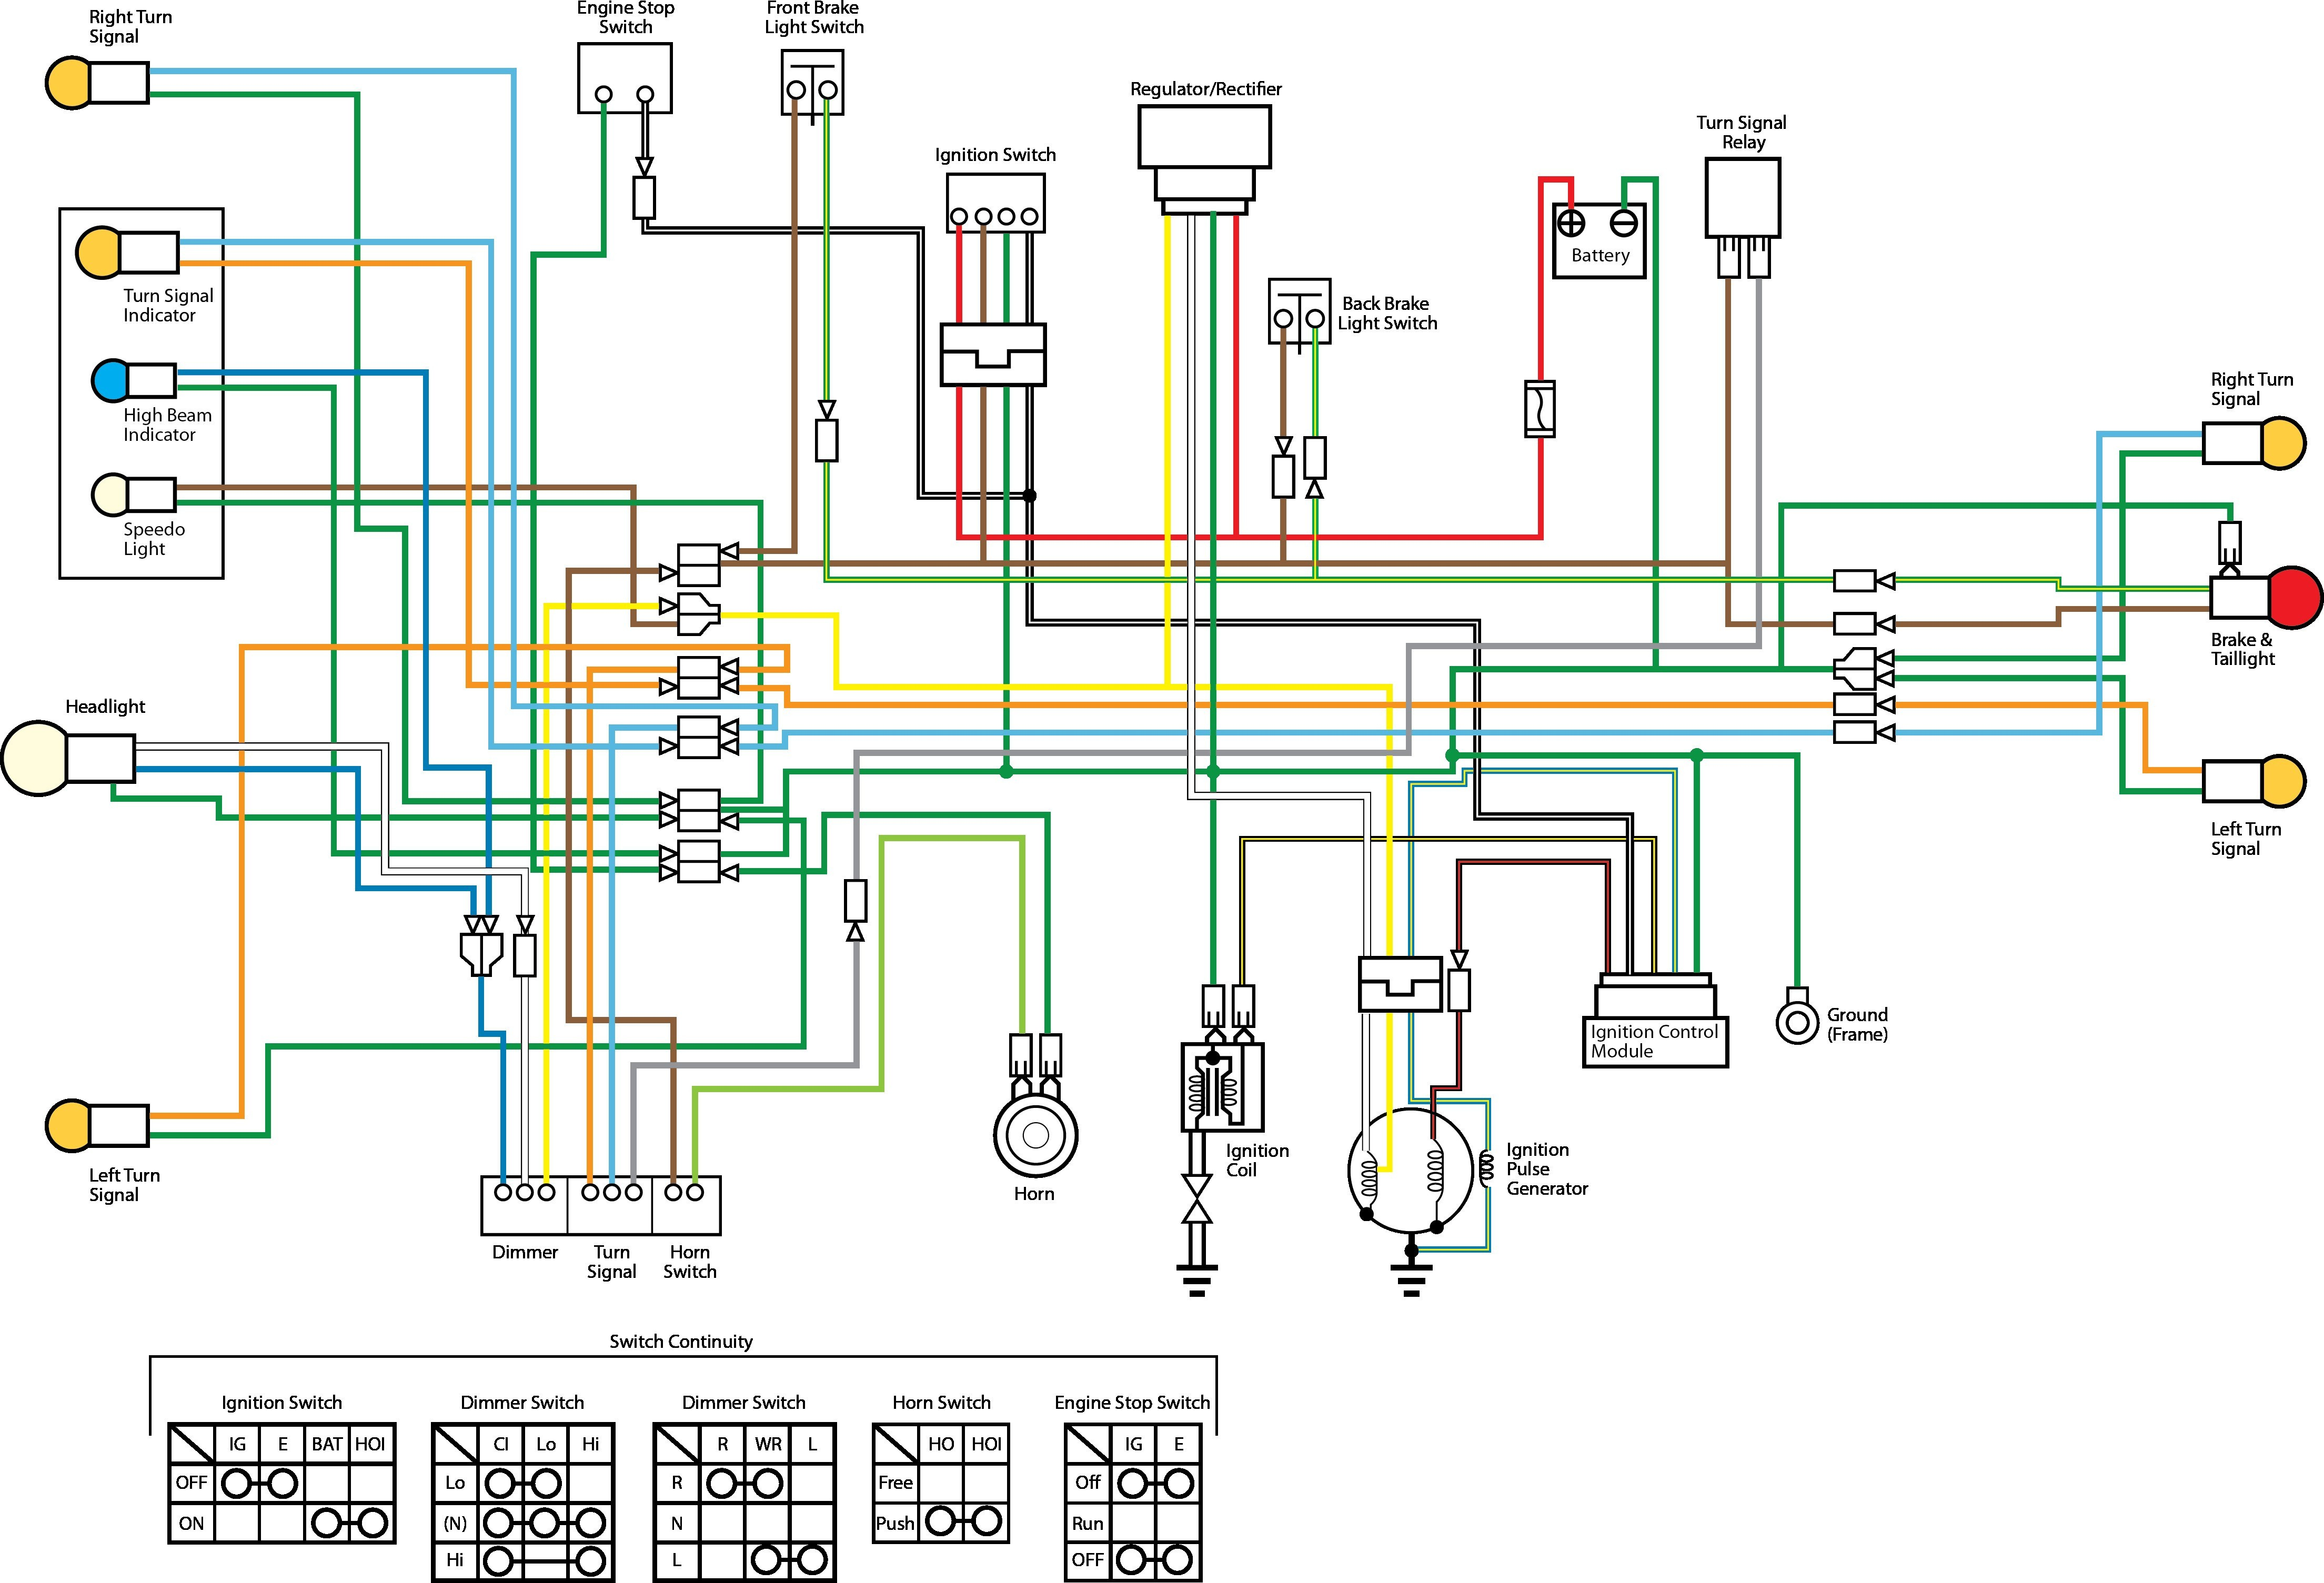 Chevy S10 Tail Light Wiring Diagram Wiring Diagram for 1986 Chevy S10 Wiring Diagram Datasource Of Chevy S10 Tail Light Wiring Diagram